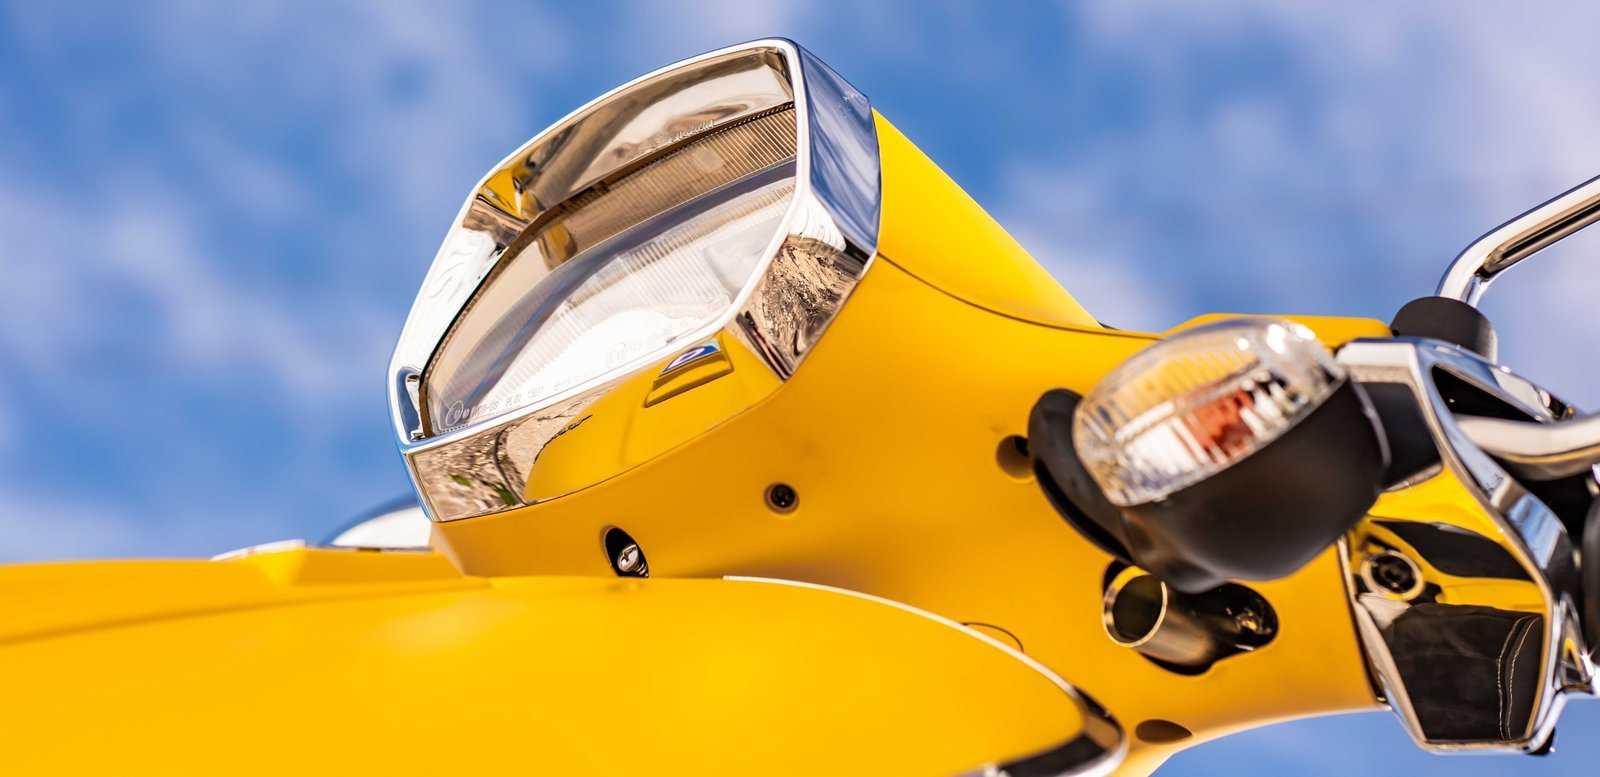 2018 Vespa Sprint Pictures, Photos, Wallpapers.